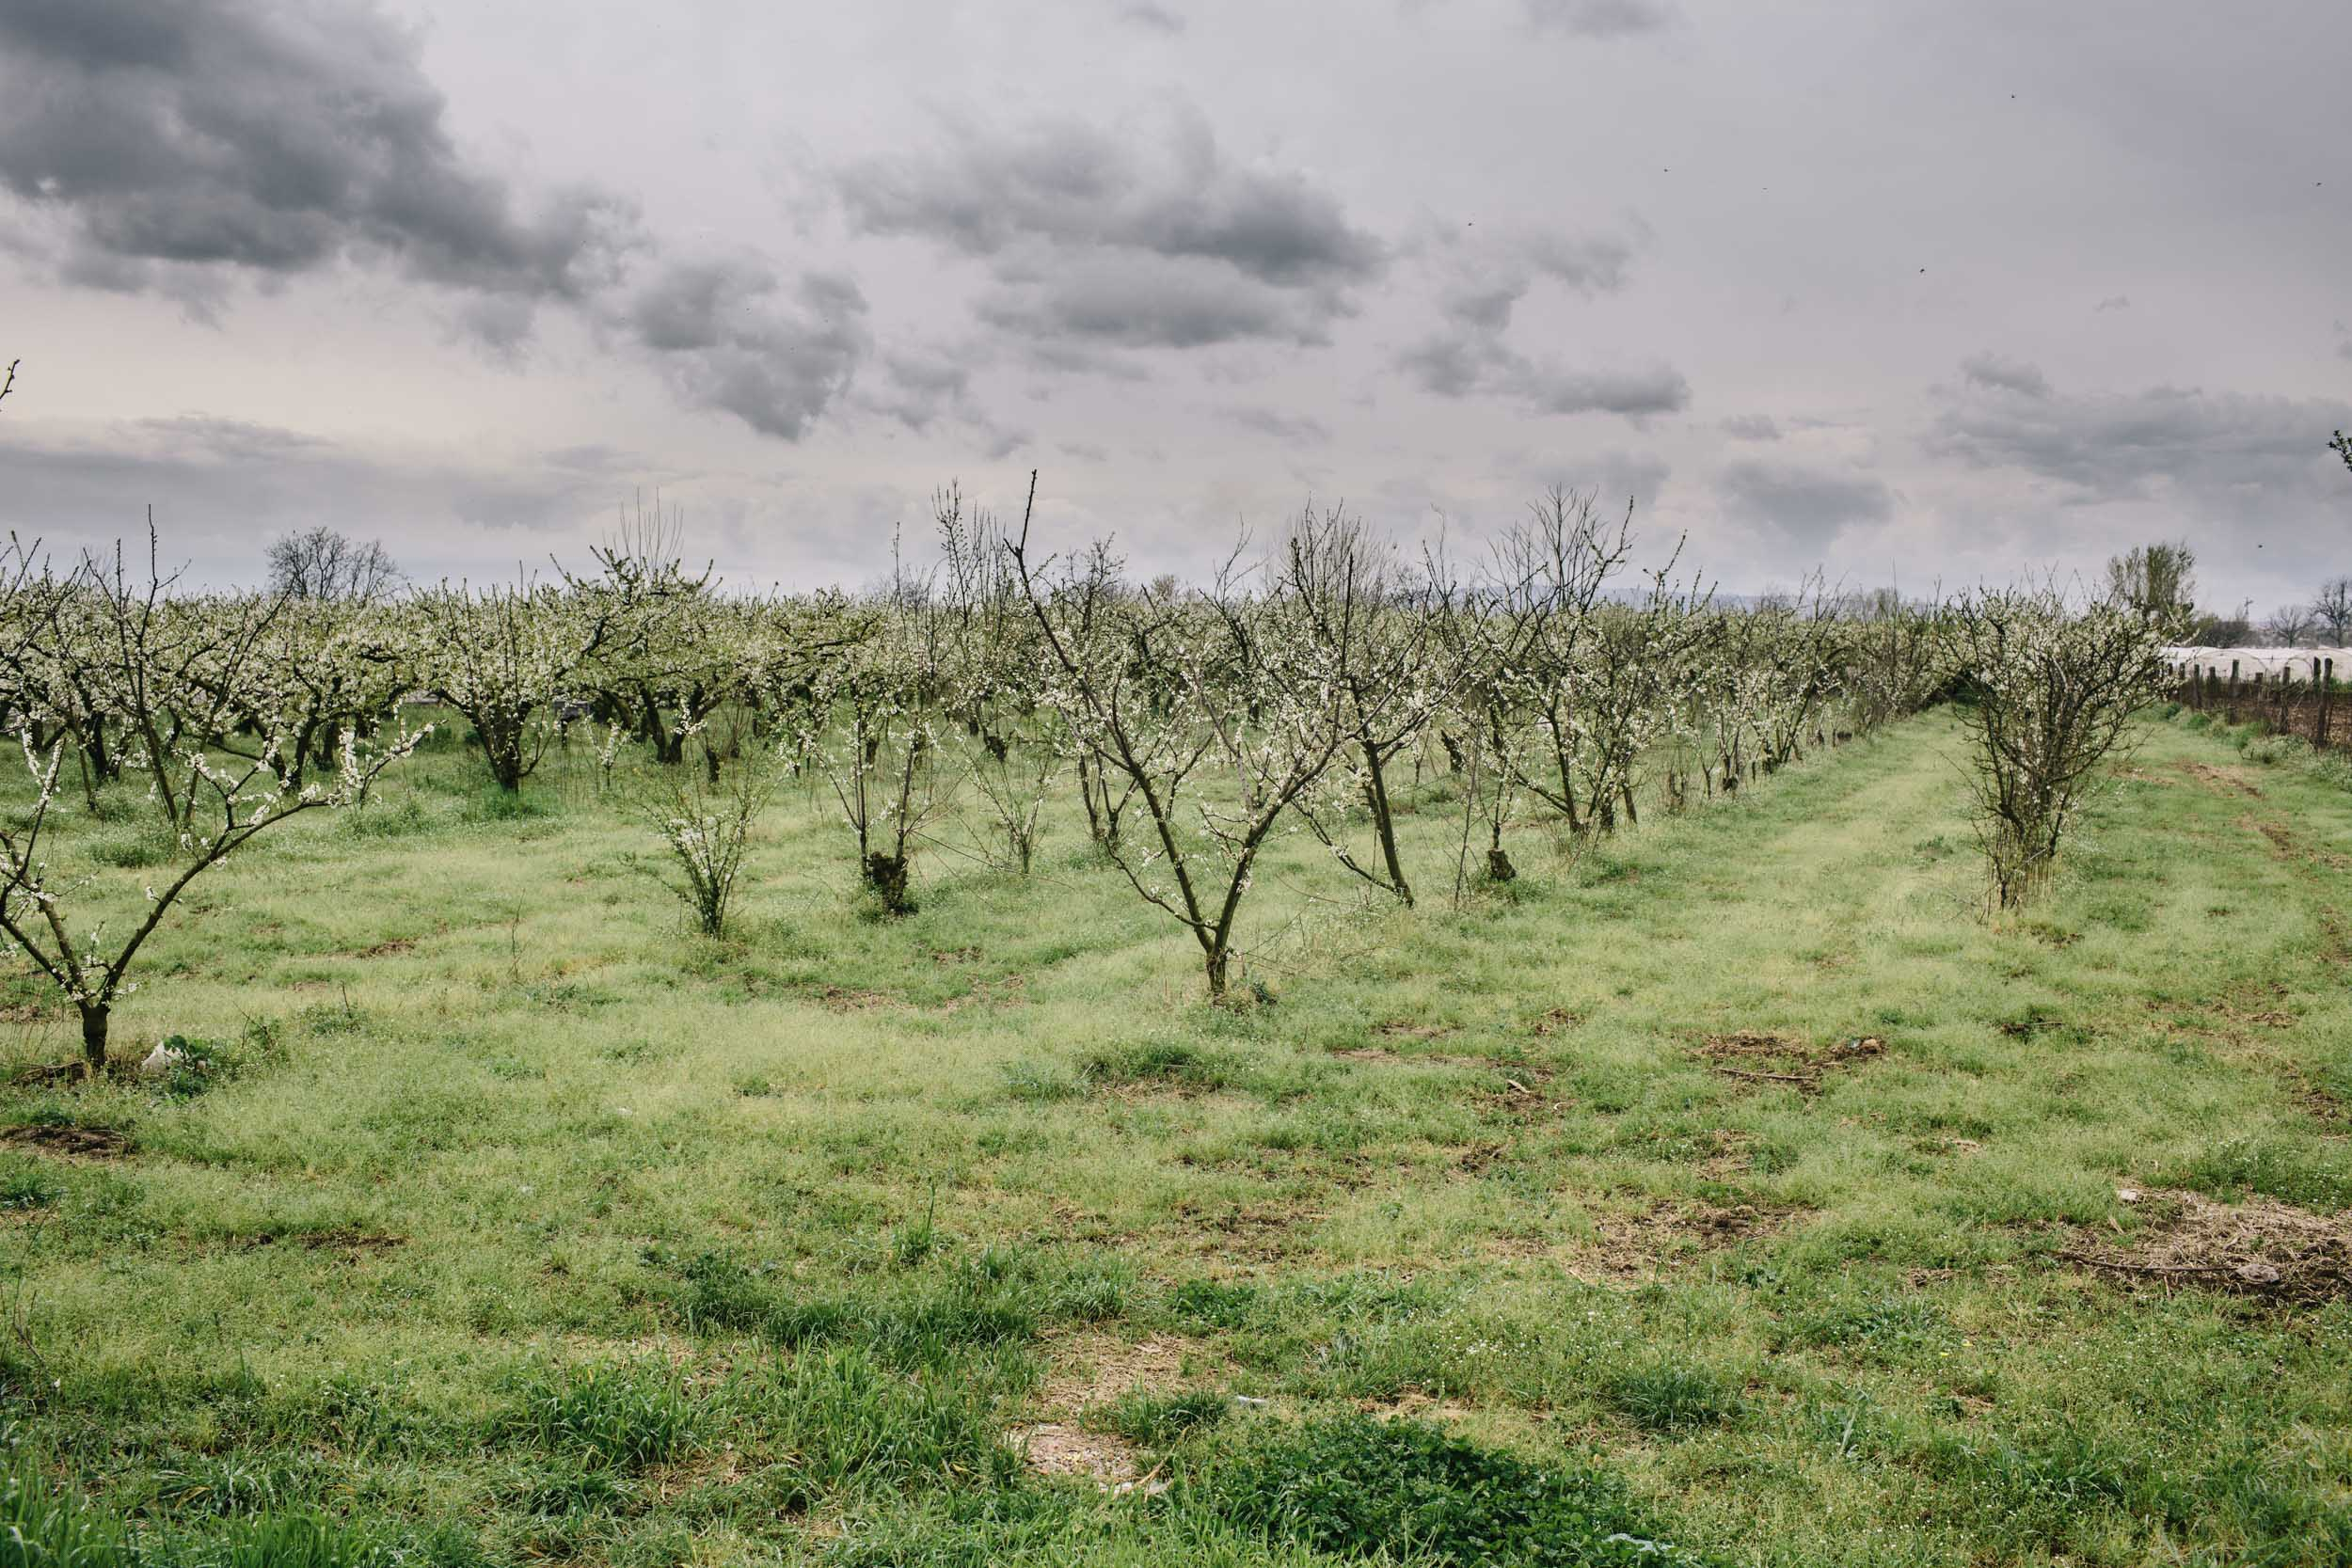 A peach tree farm begins to bloom in the late Spring